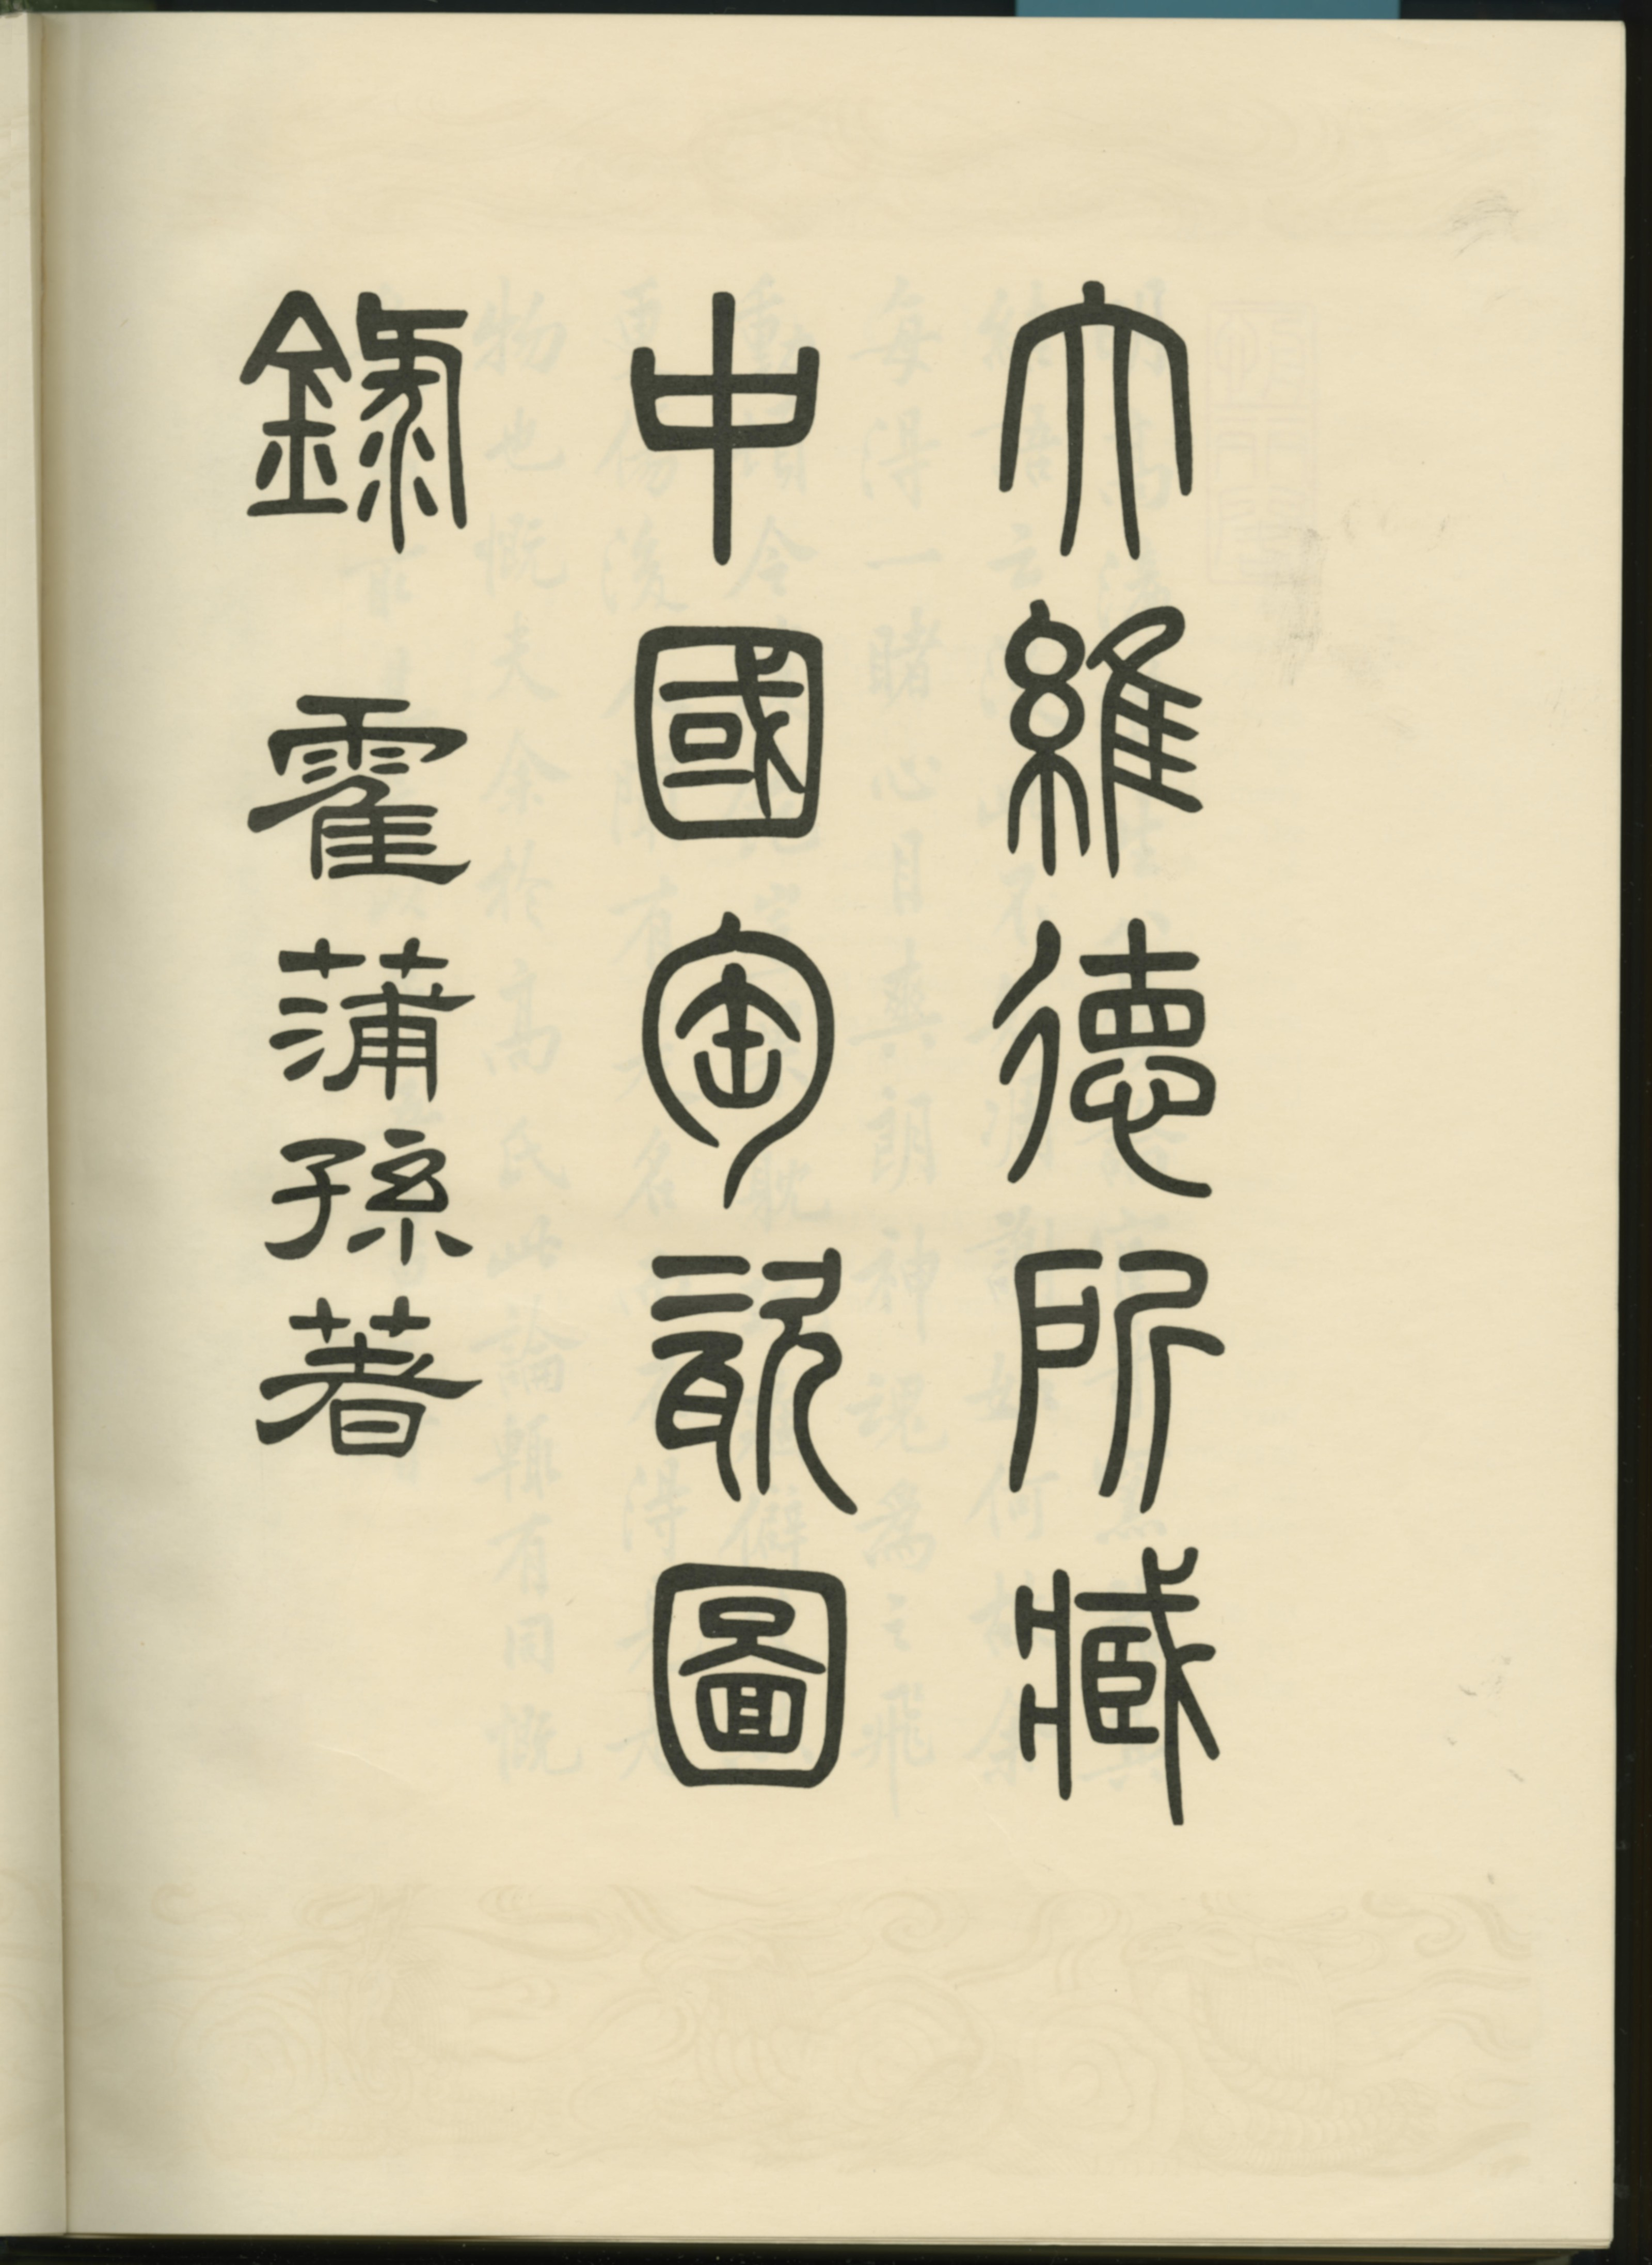 HOBSON, R.L. A Catalogue of Chinese Pottery and Porcelain in the Collection of Sir Percival David. London: The Stourton Press [1934].